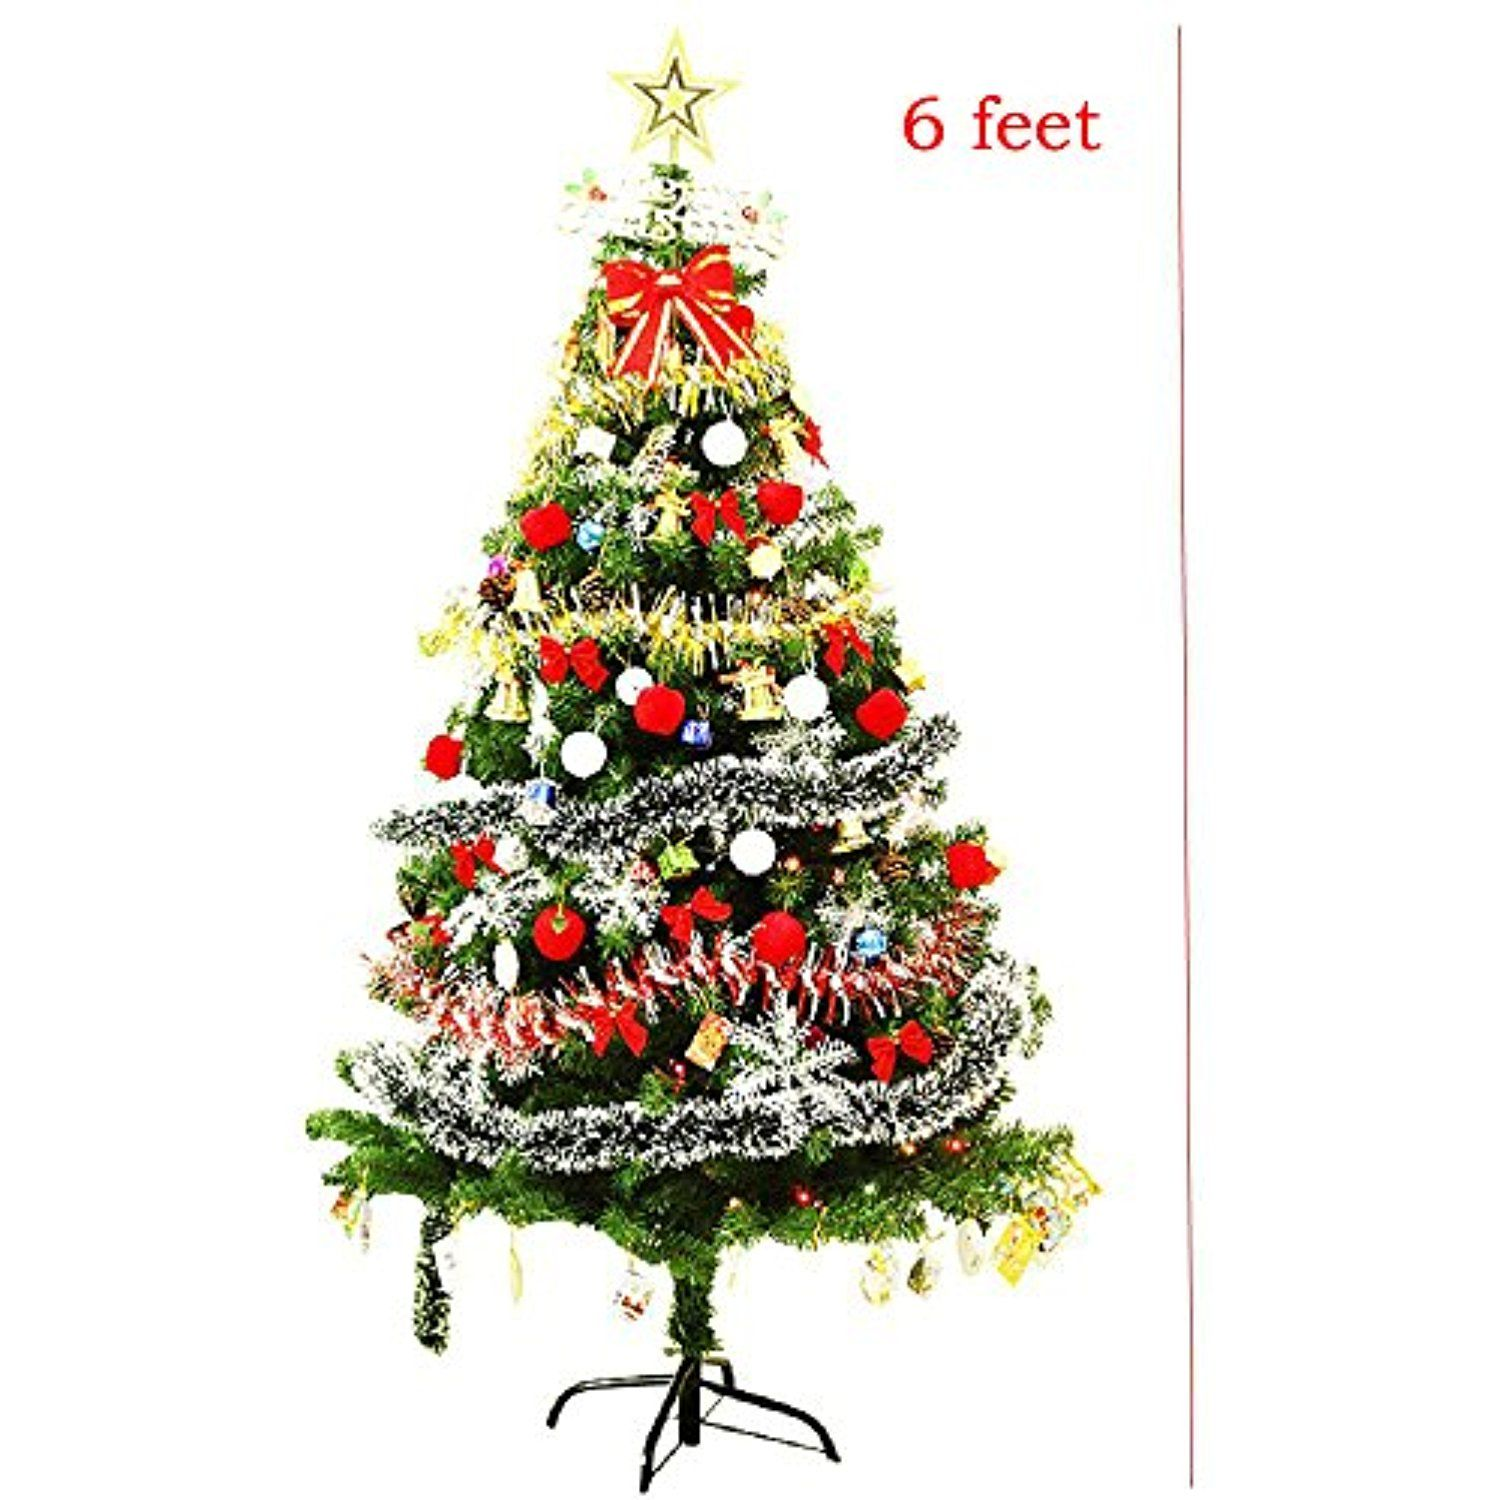 pre lit decorated christmas tree ft battery operated decorated with ornaments snowflakes cones stars gift boxes etc ft learn more by visiting the - Battery Operated Christmas Tree